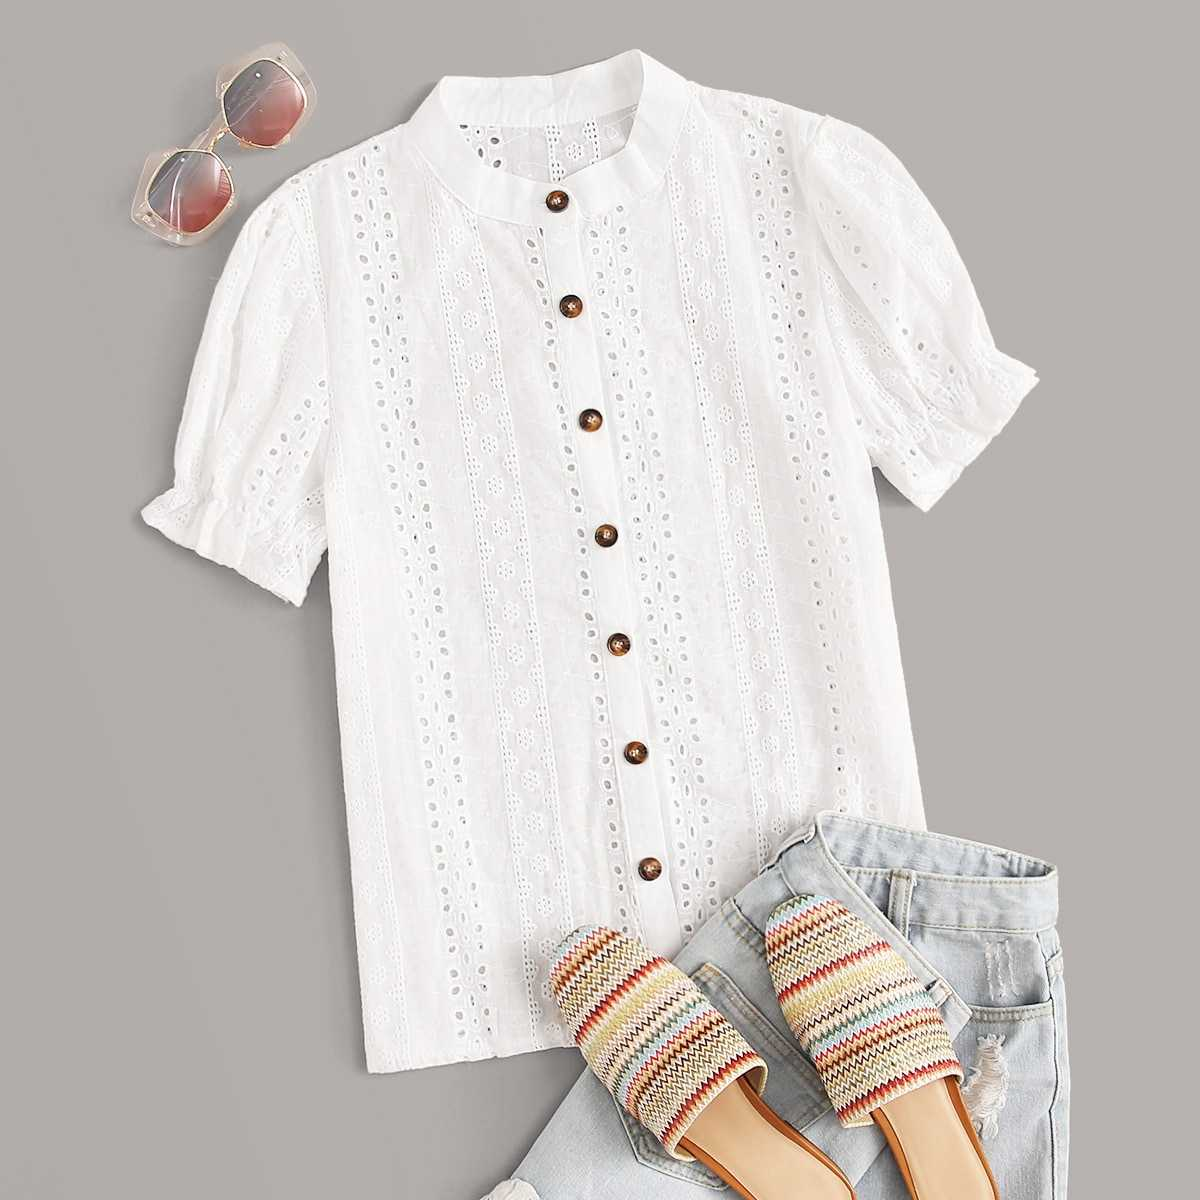 Eyelet Embroidery Button Front Blouse in White by ROMWE on GOOFASH